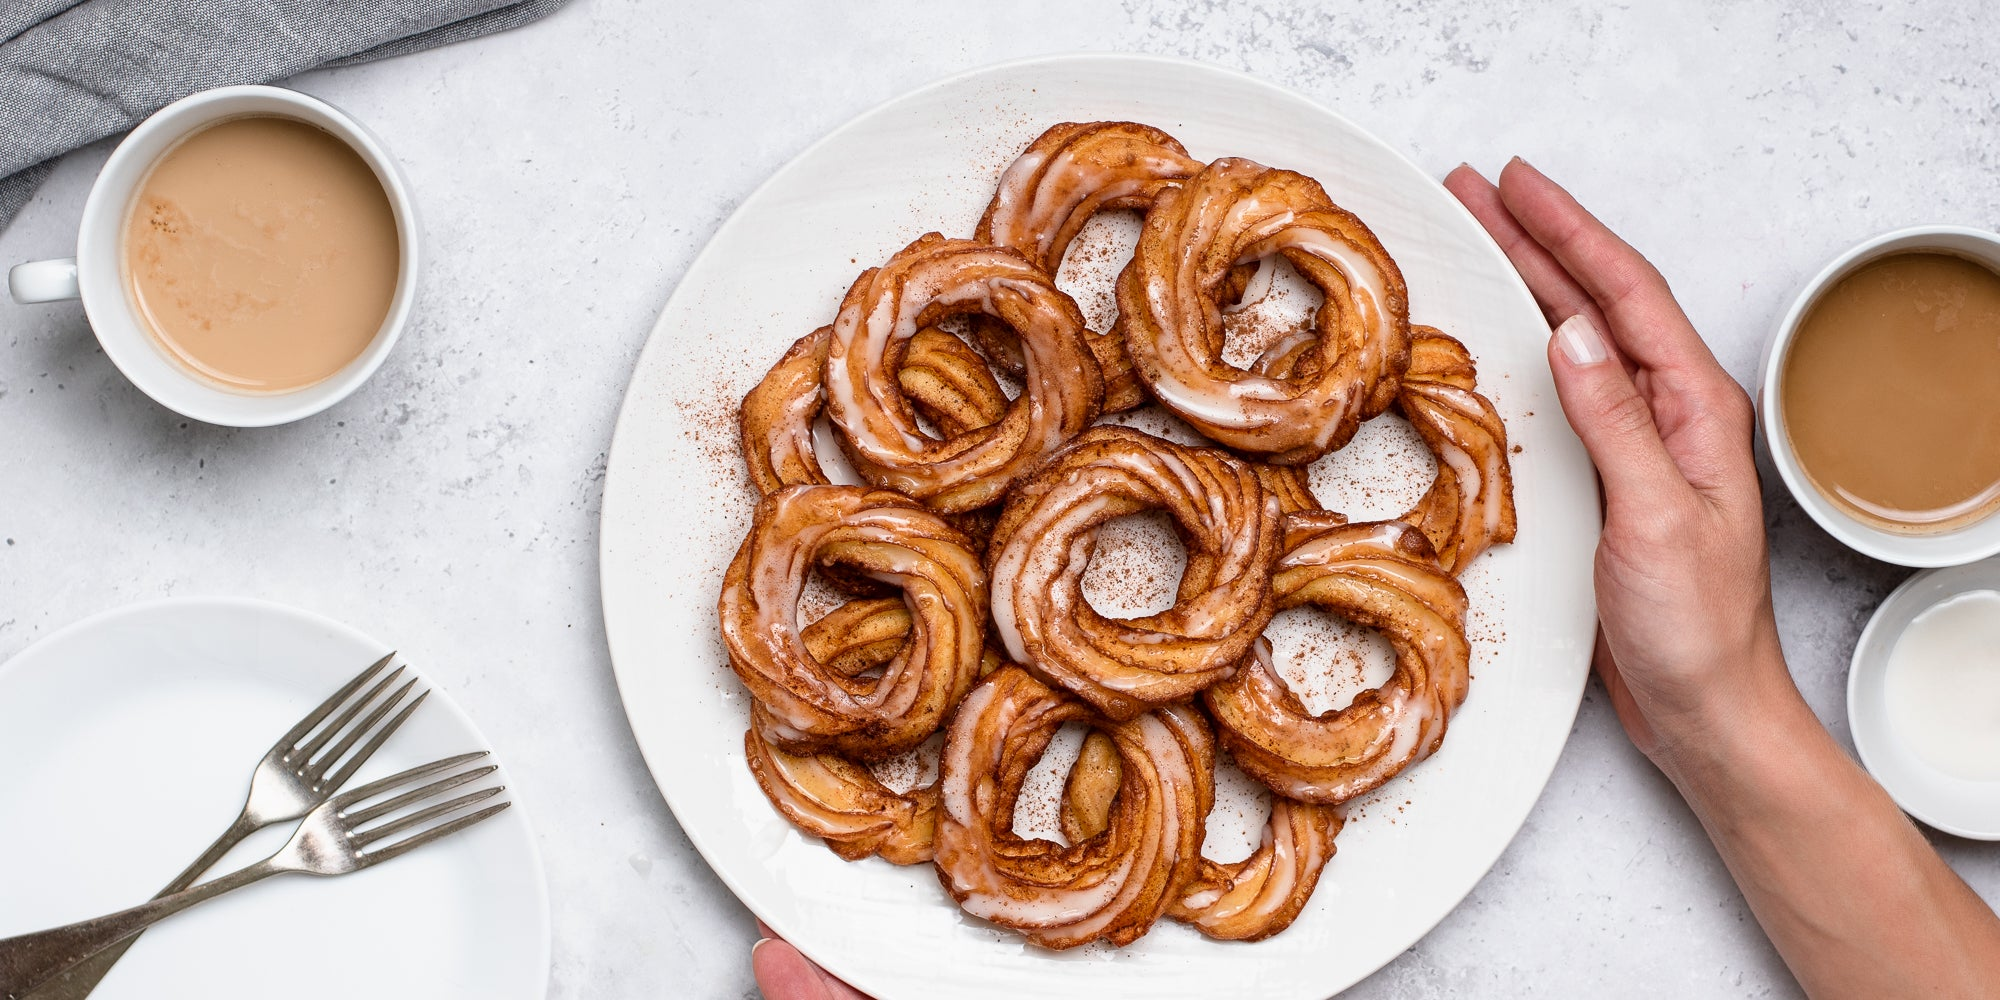 A plate of Apple Cider Crullers being held by hands. Dusted with cinnamon, next to cups of tea and cutlery